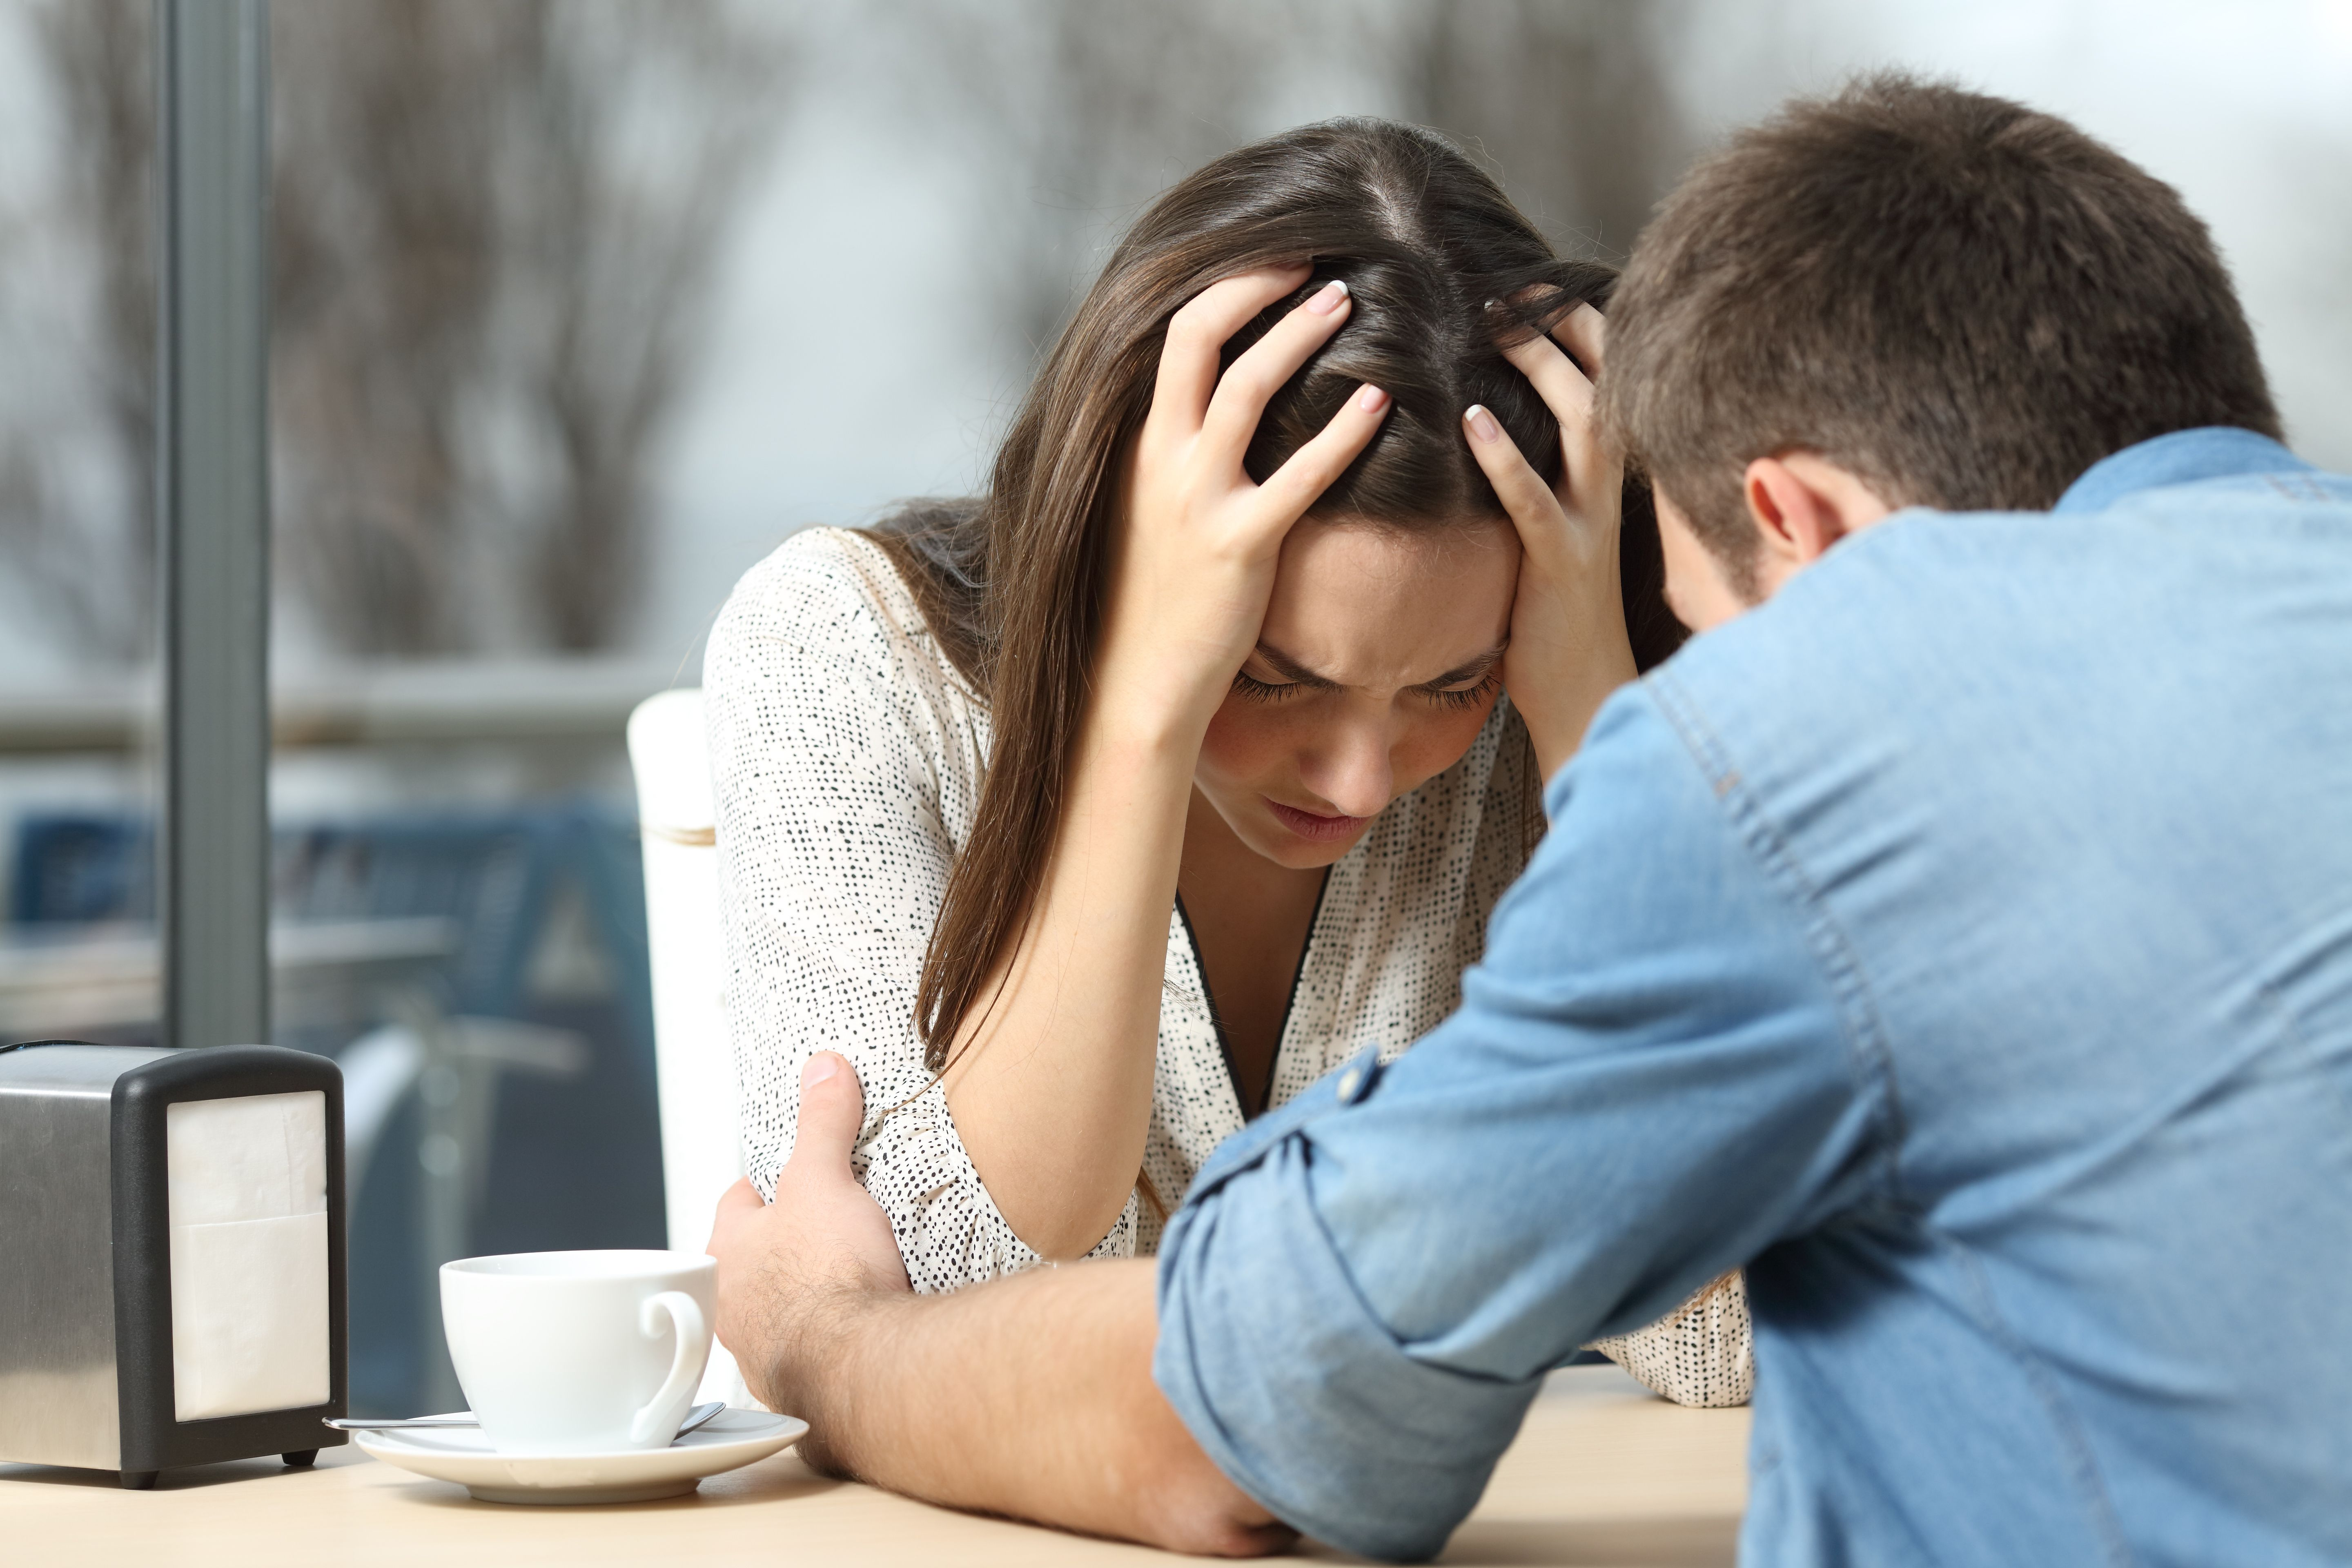 A man and a woman talk about a problem. | Source: Shutterstock